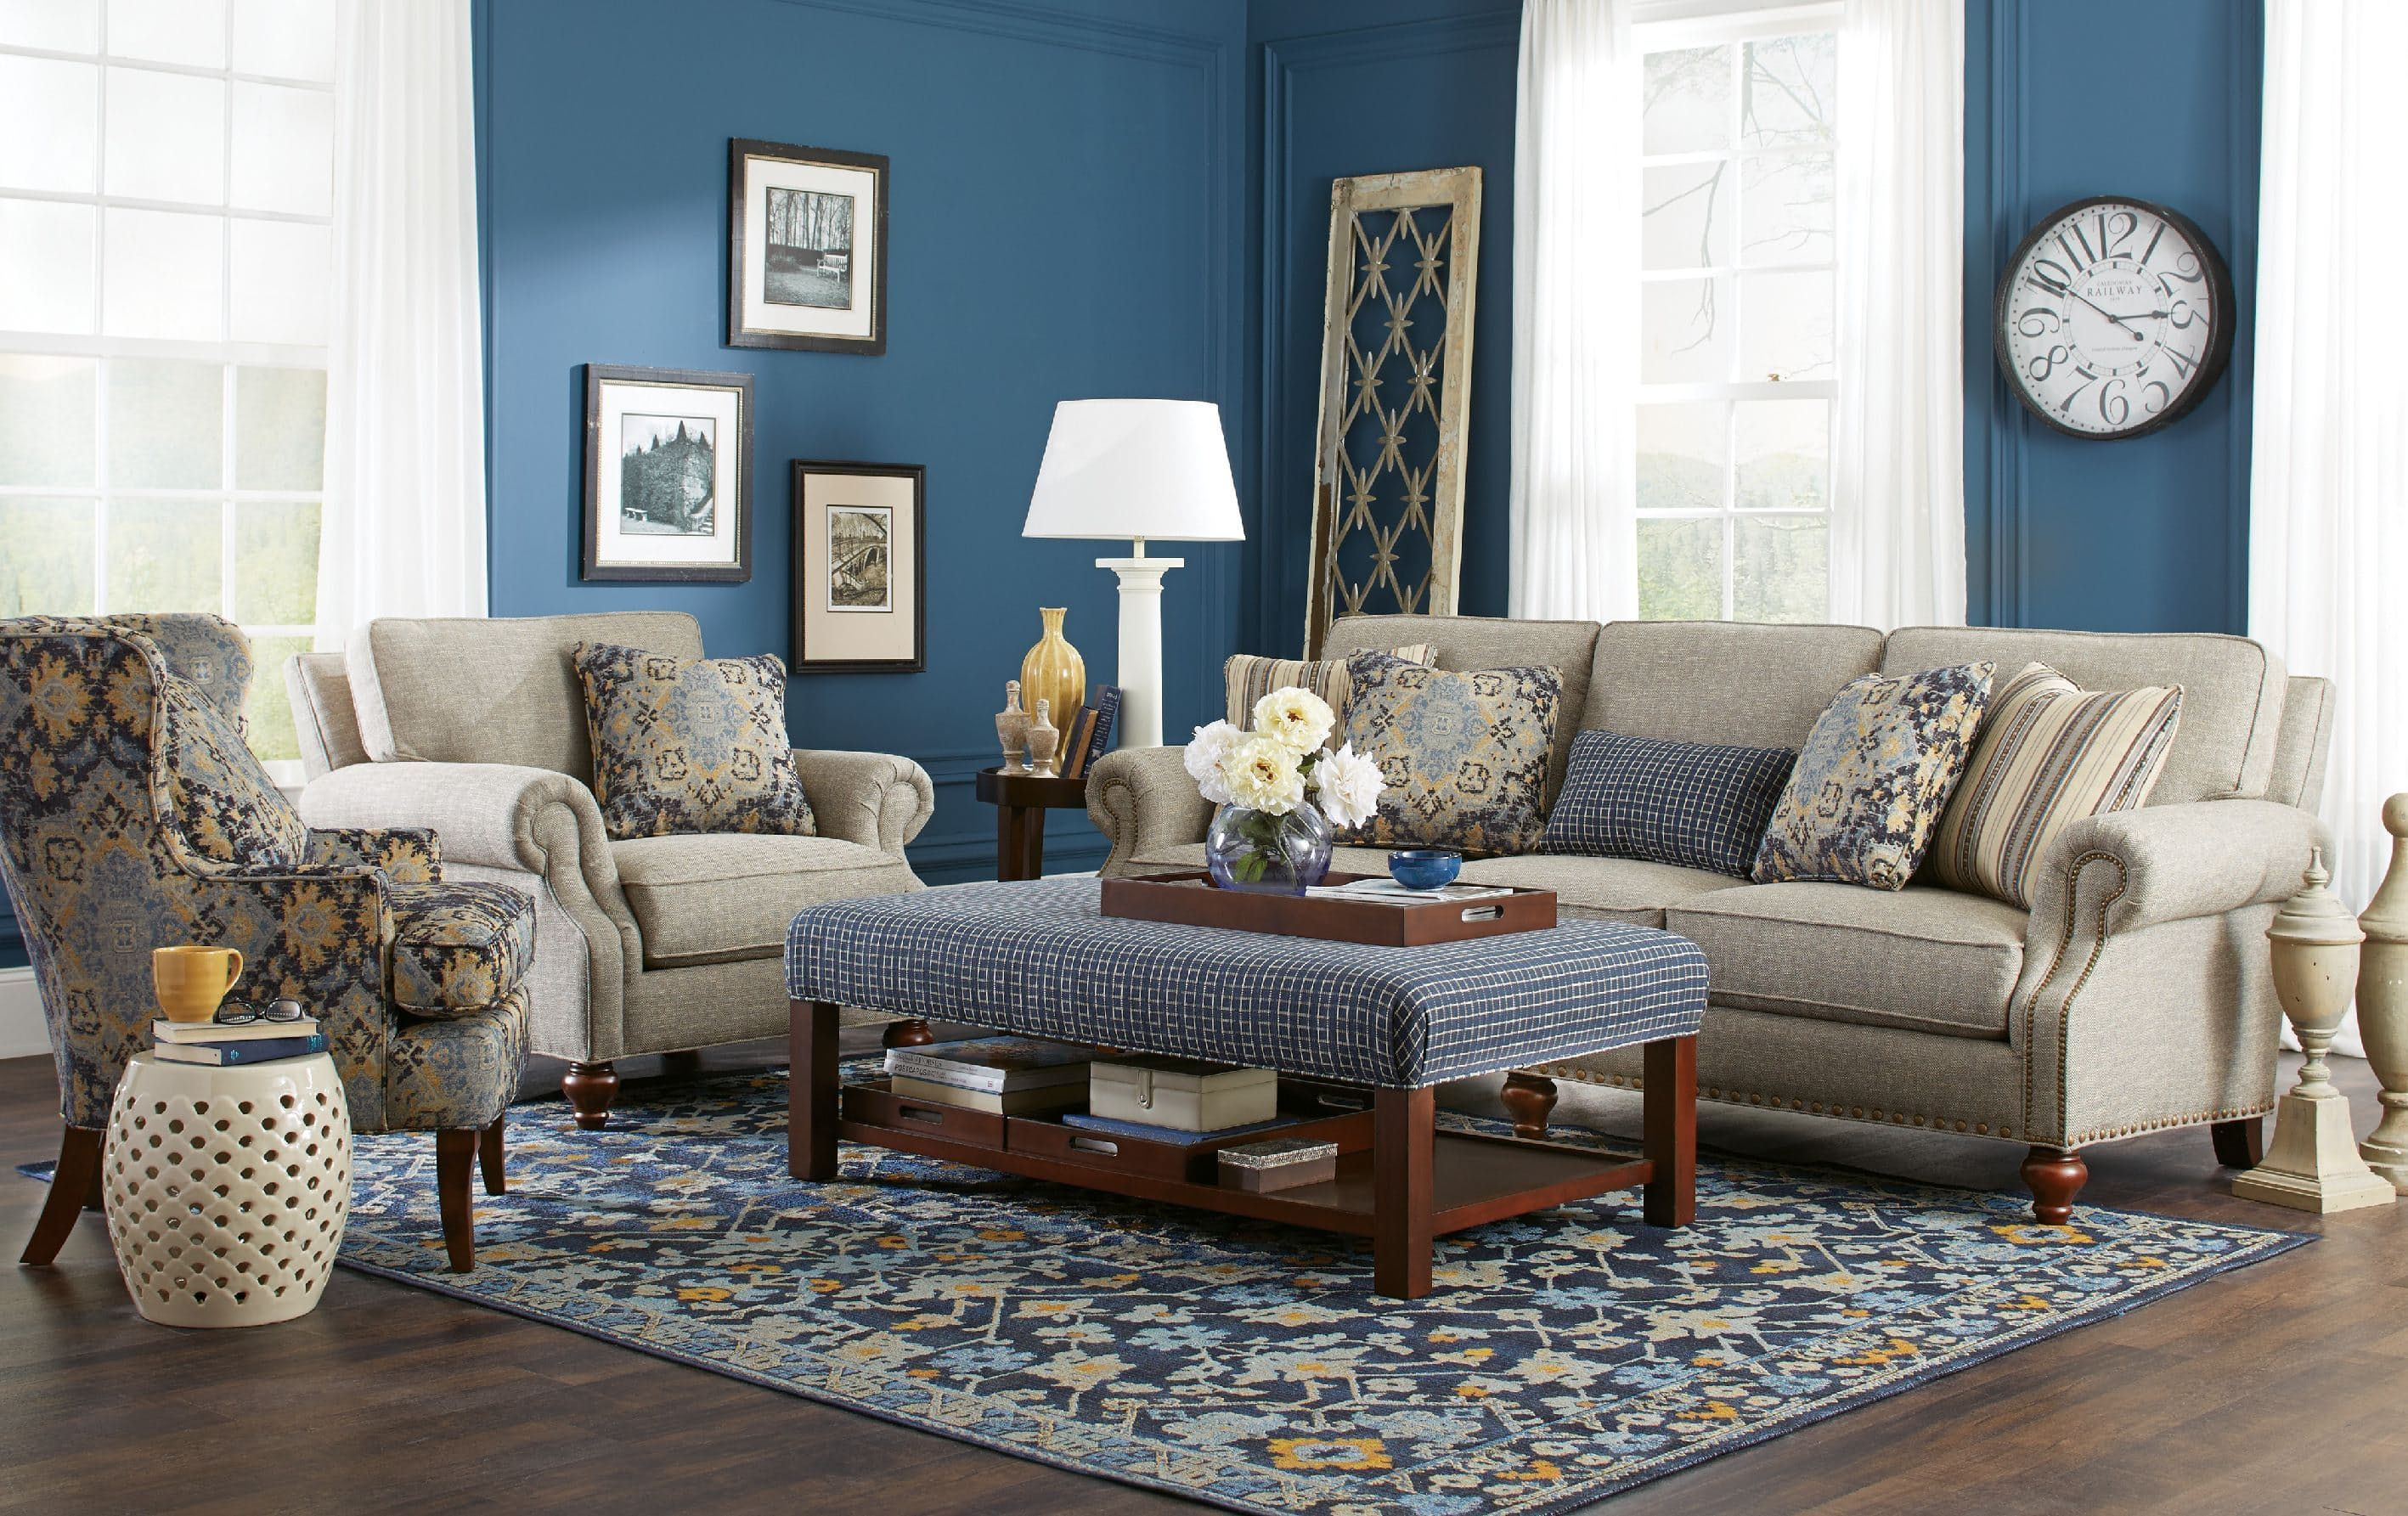 Elegant Craftmaster Living Room Sofa 762350   Tyndall Furniture Galleries, INC    Charlotte, Mooresville, Pineville NC And Fort Mill, SC